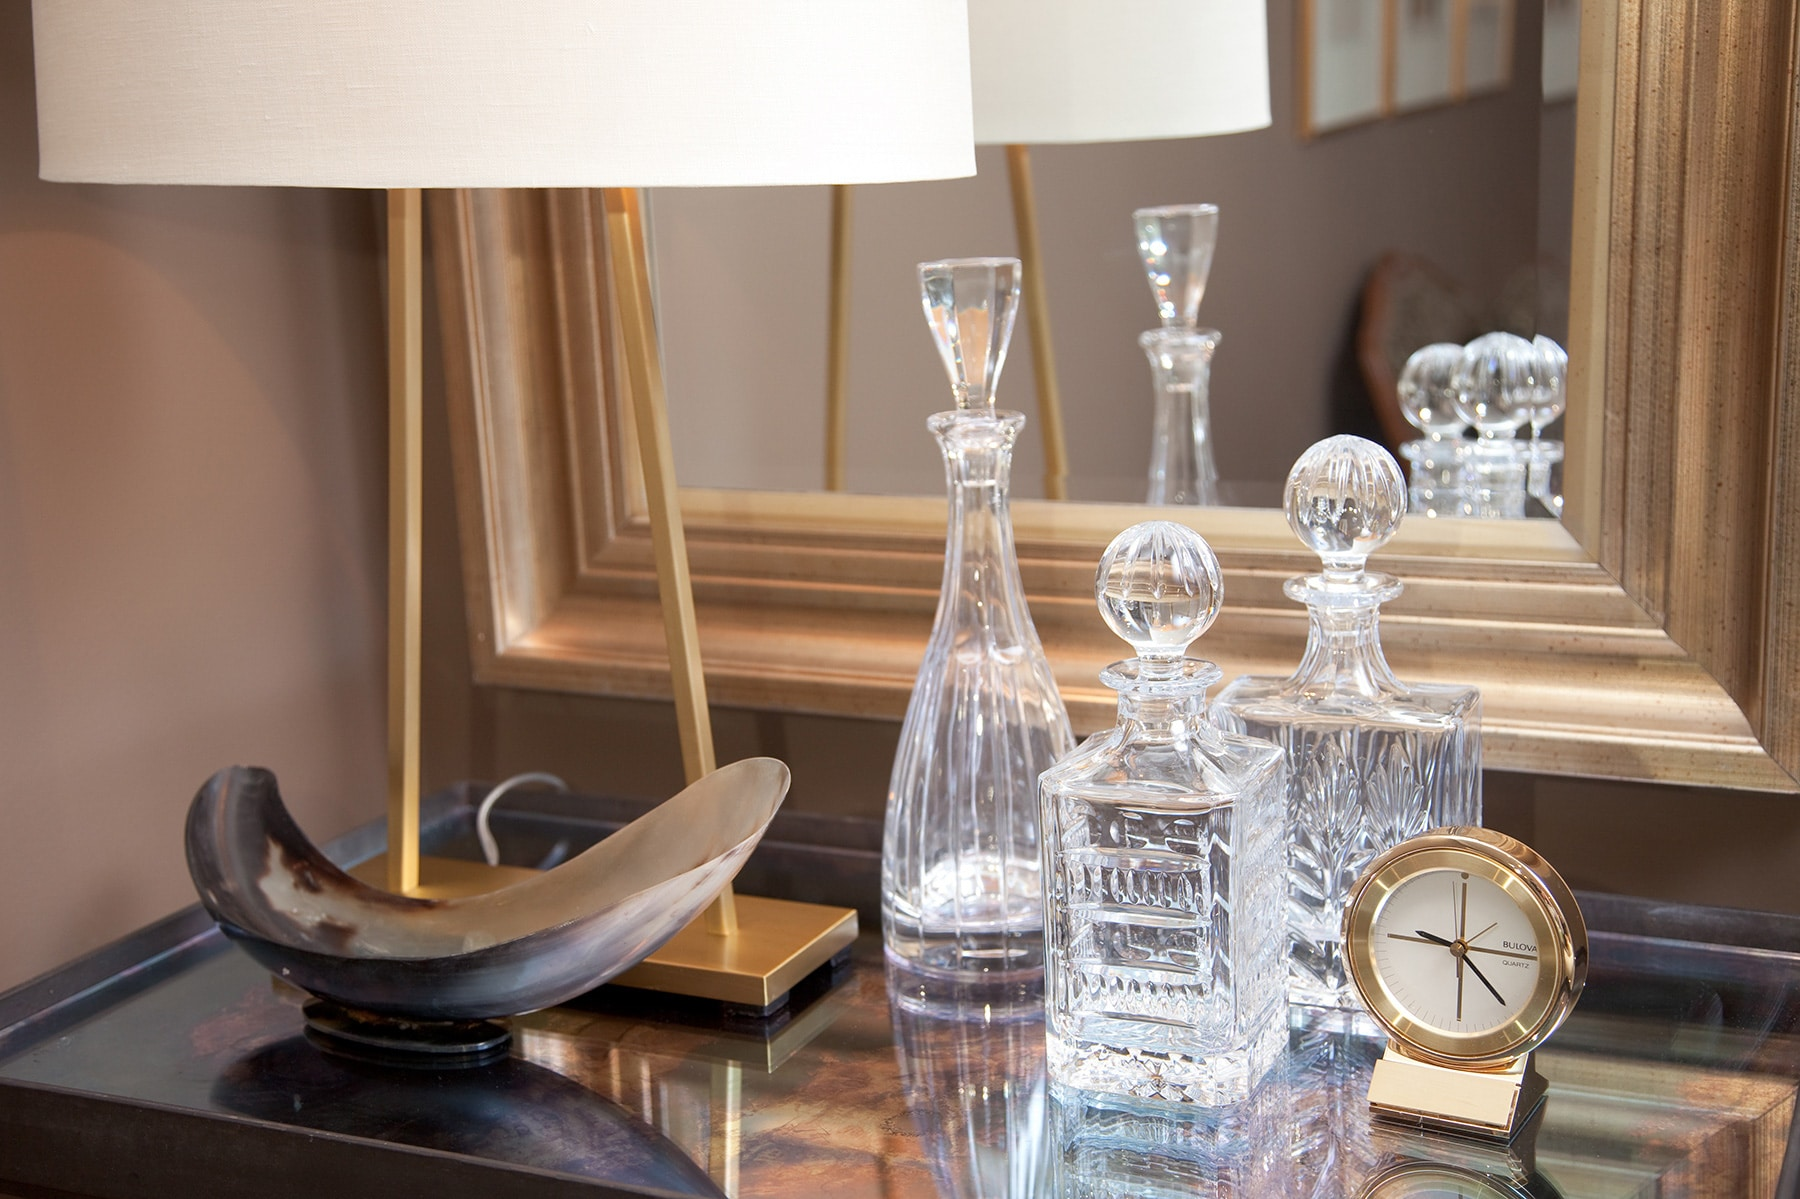 Tabletop with crystal decanters, gold plated desk lamp, horn tray, gold plated clock and gold antiqued mirror